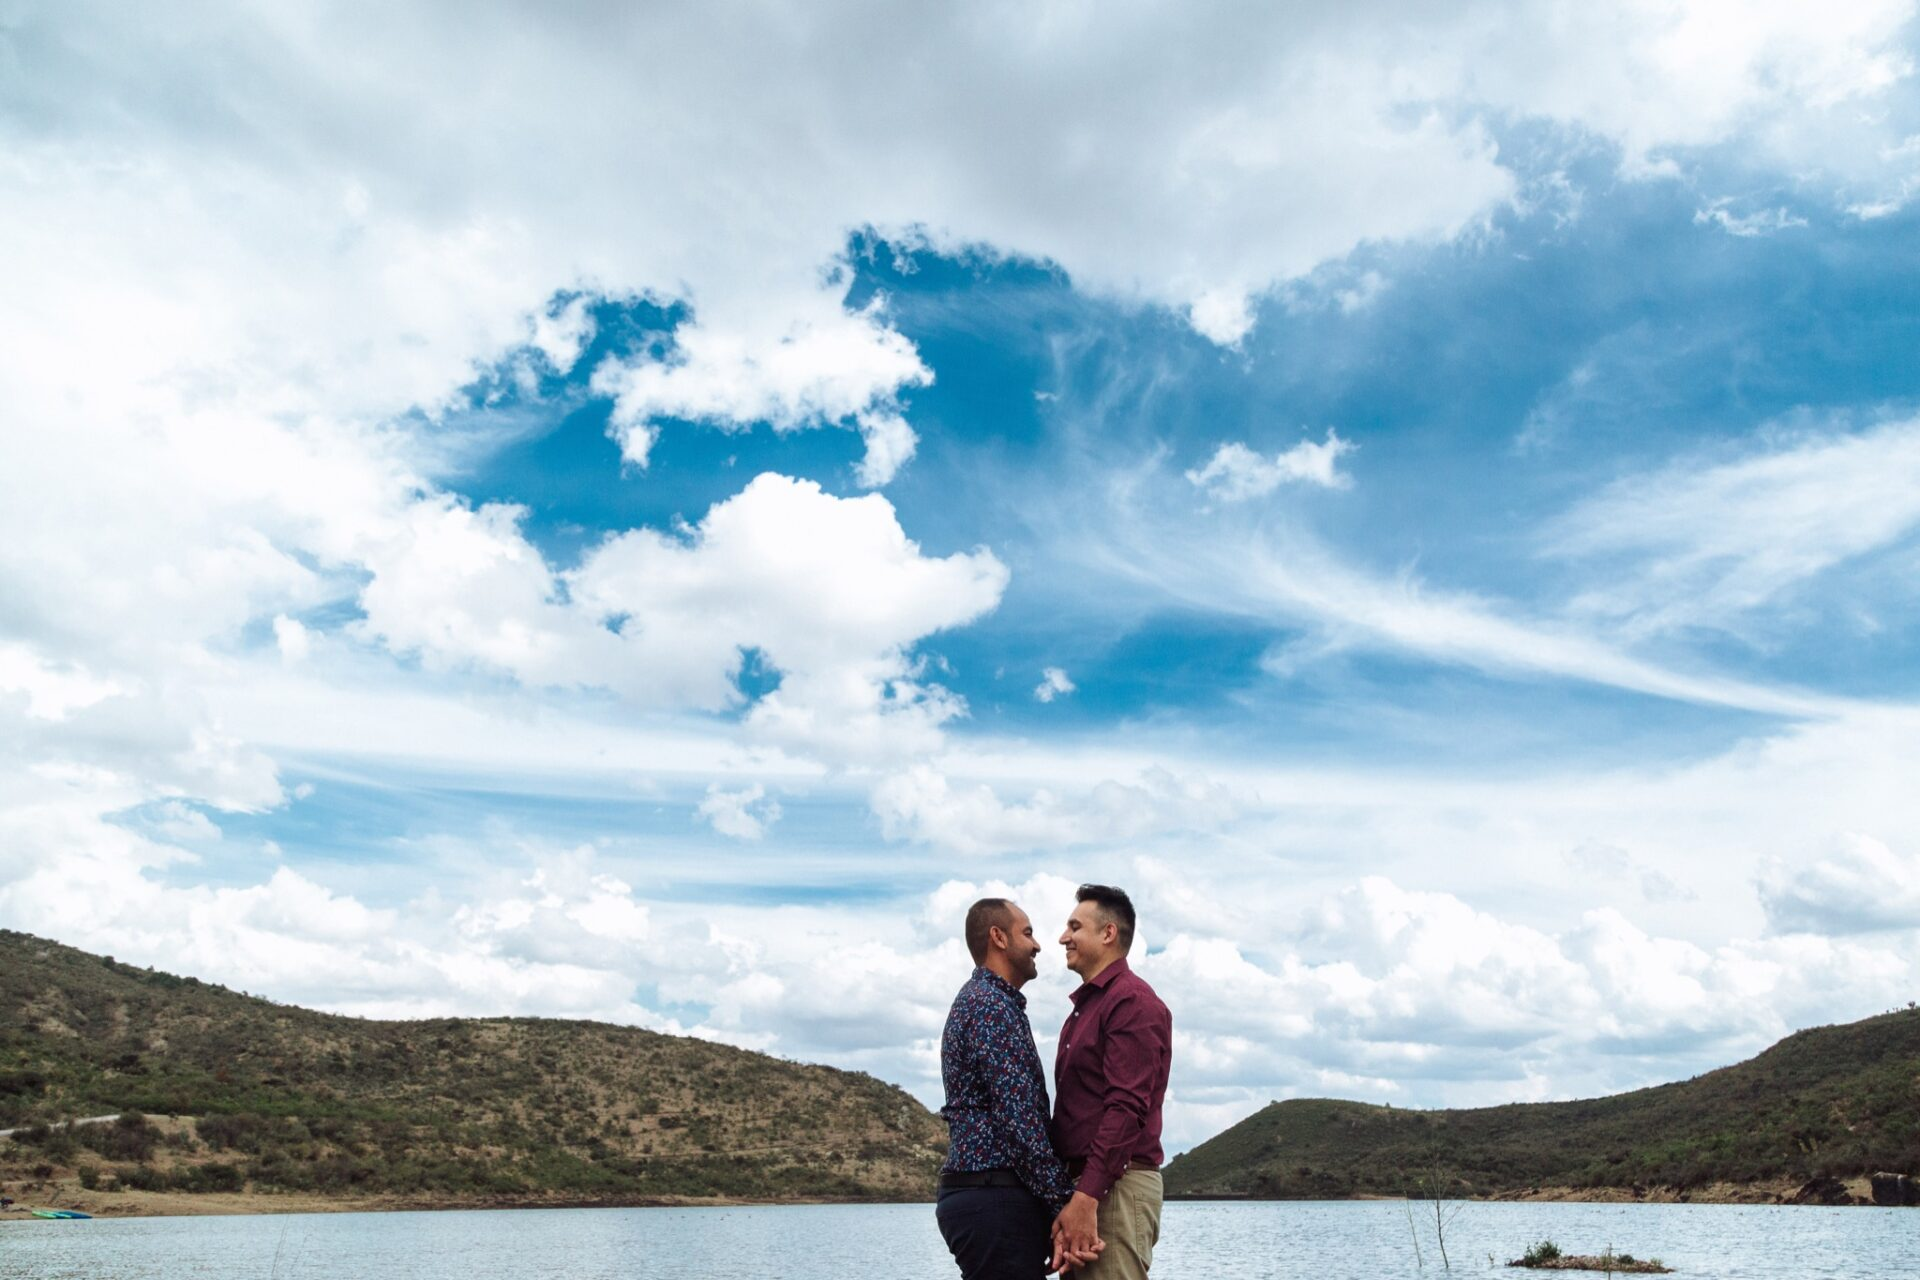 javier_noriega_fotografo_bodas_save_the_date_preboda_zacatecas_wedding_photographer14